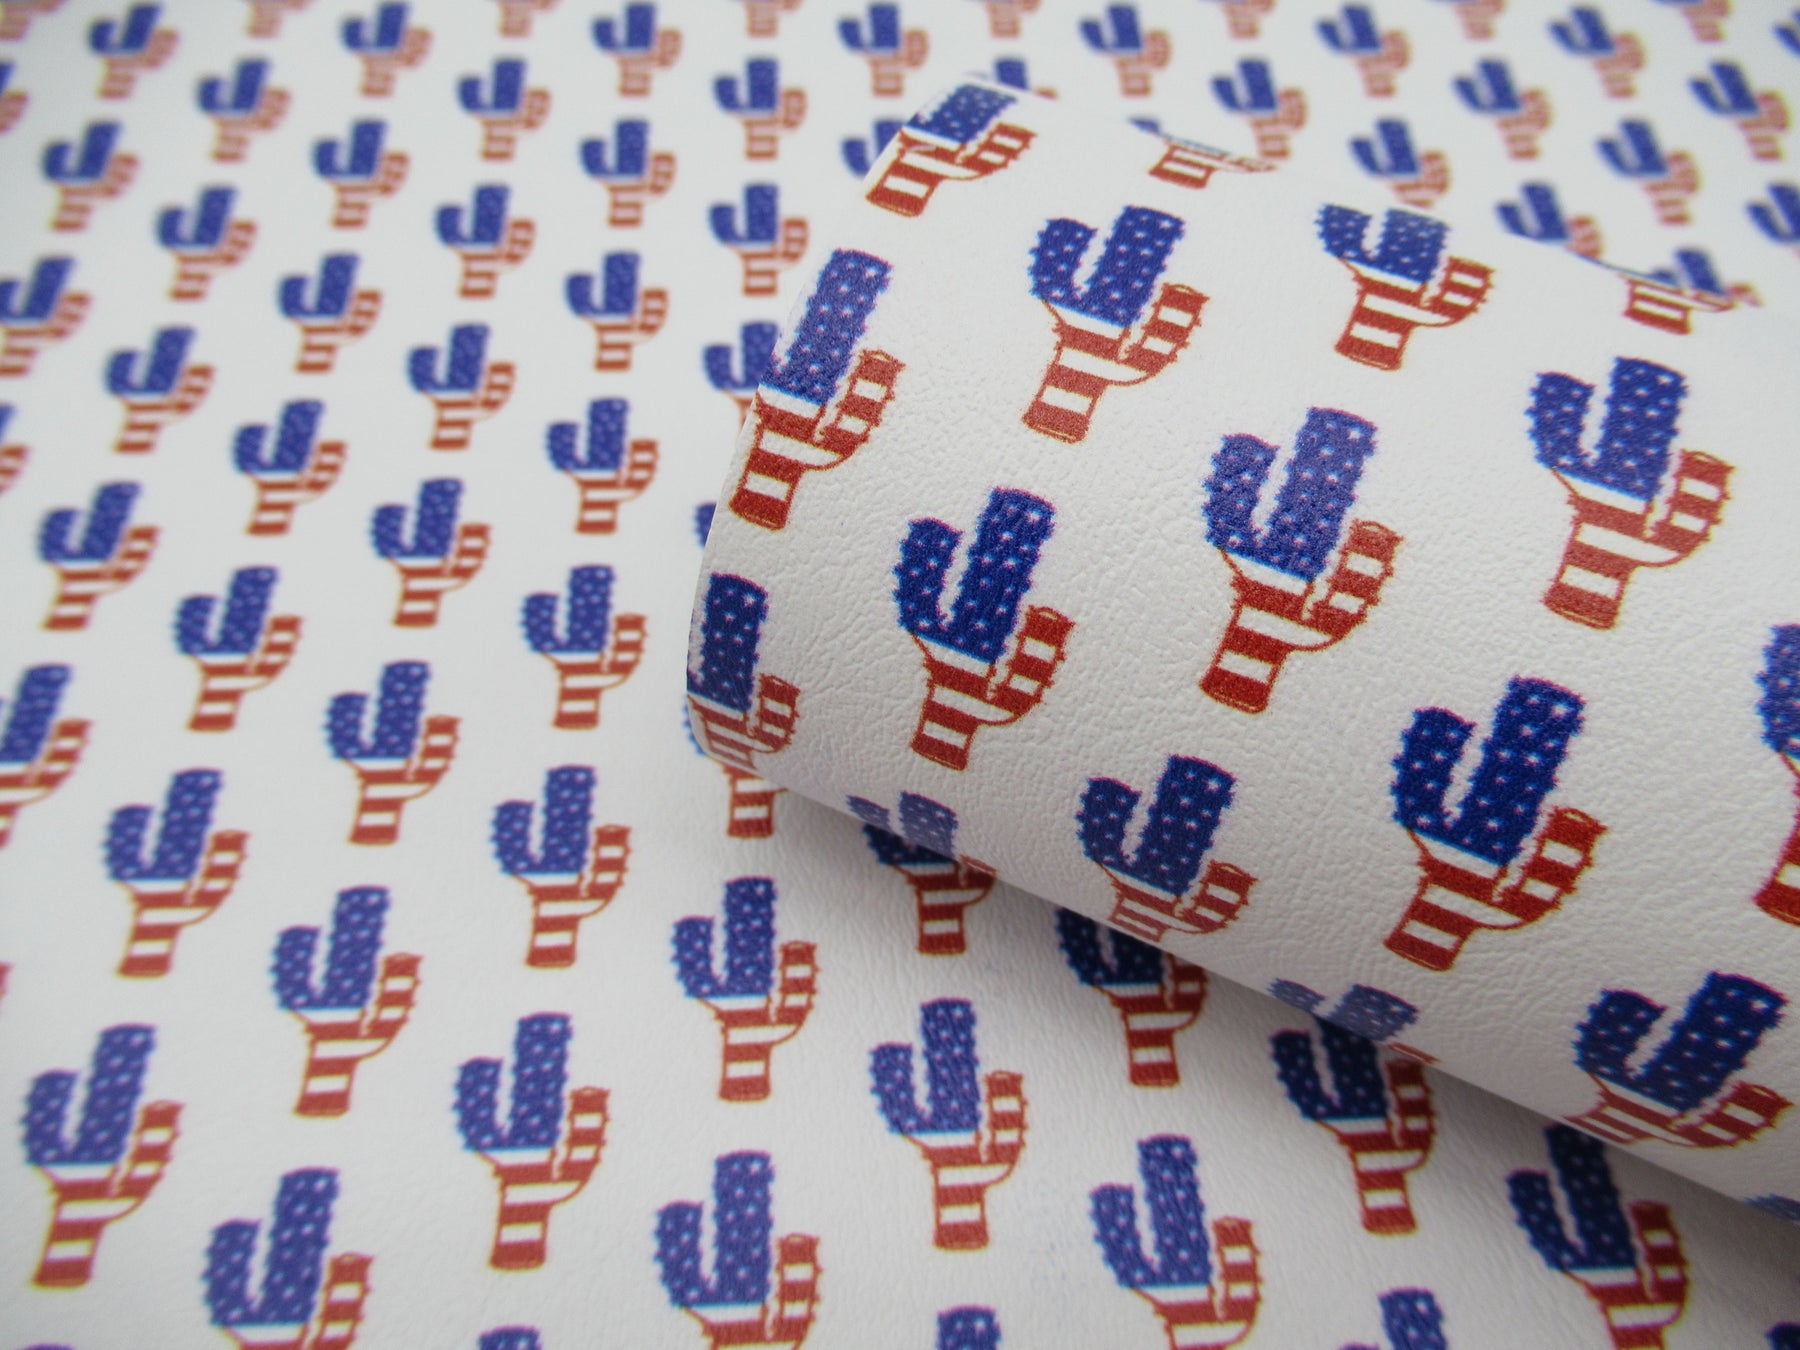 Patriotic Cactus Printed Marine Vinyl Faux Leather